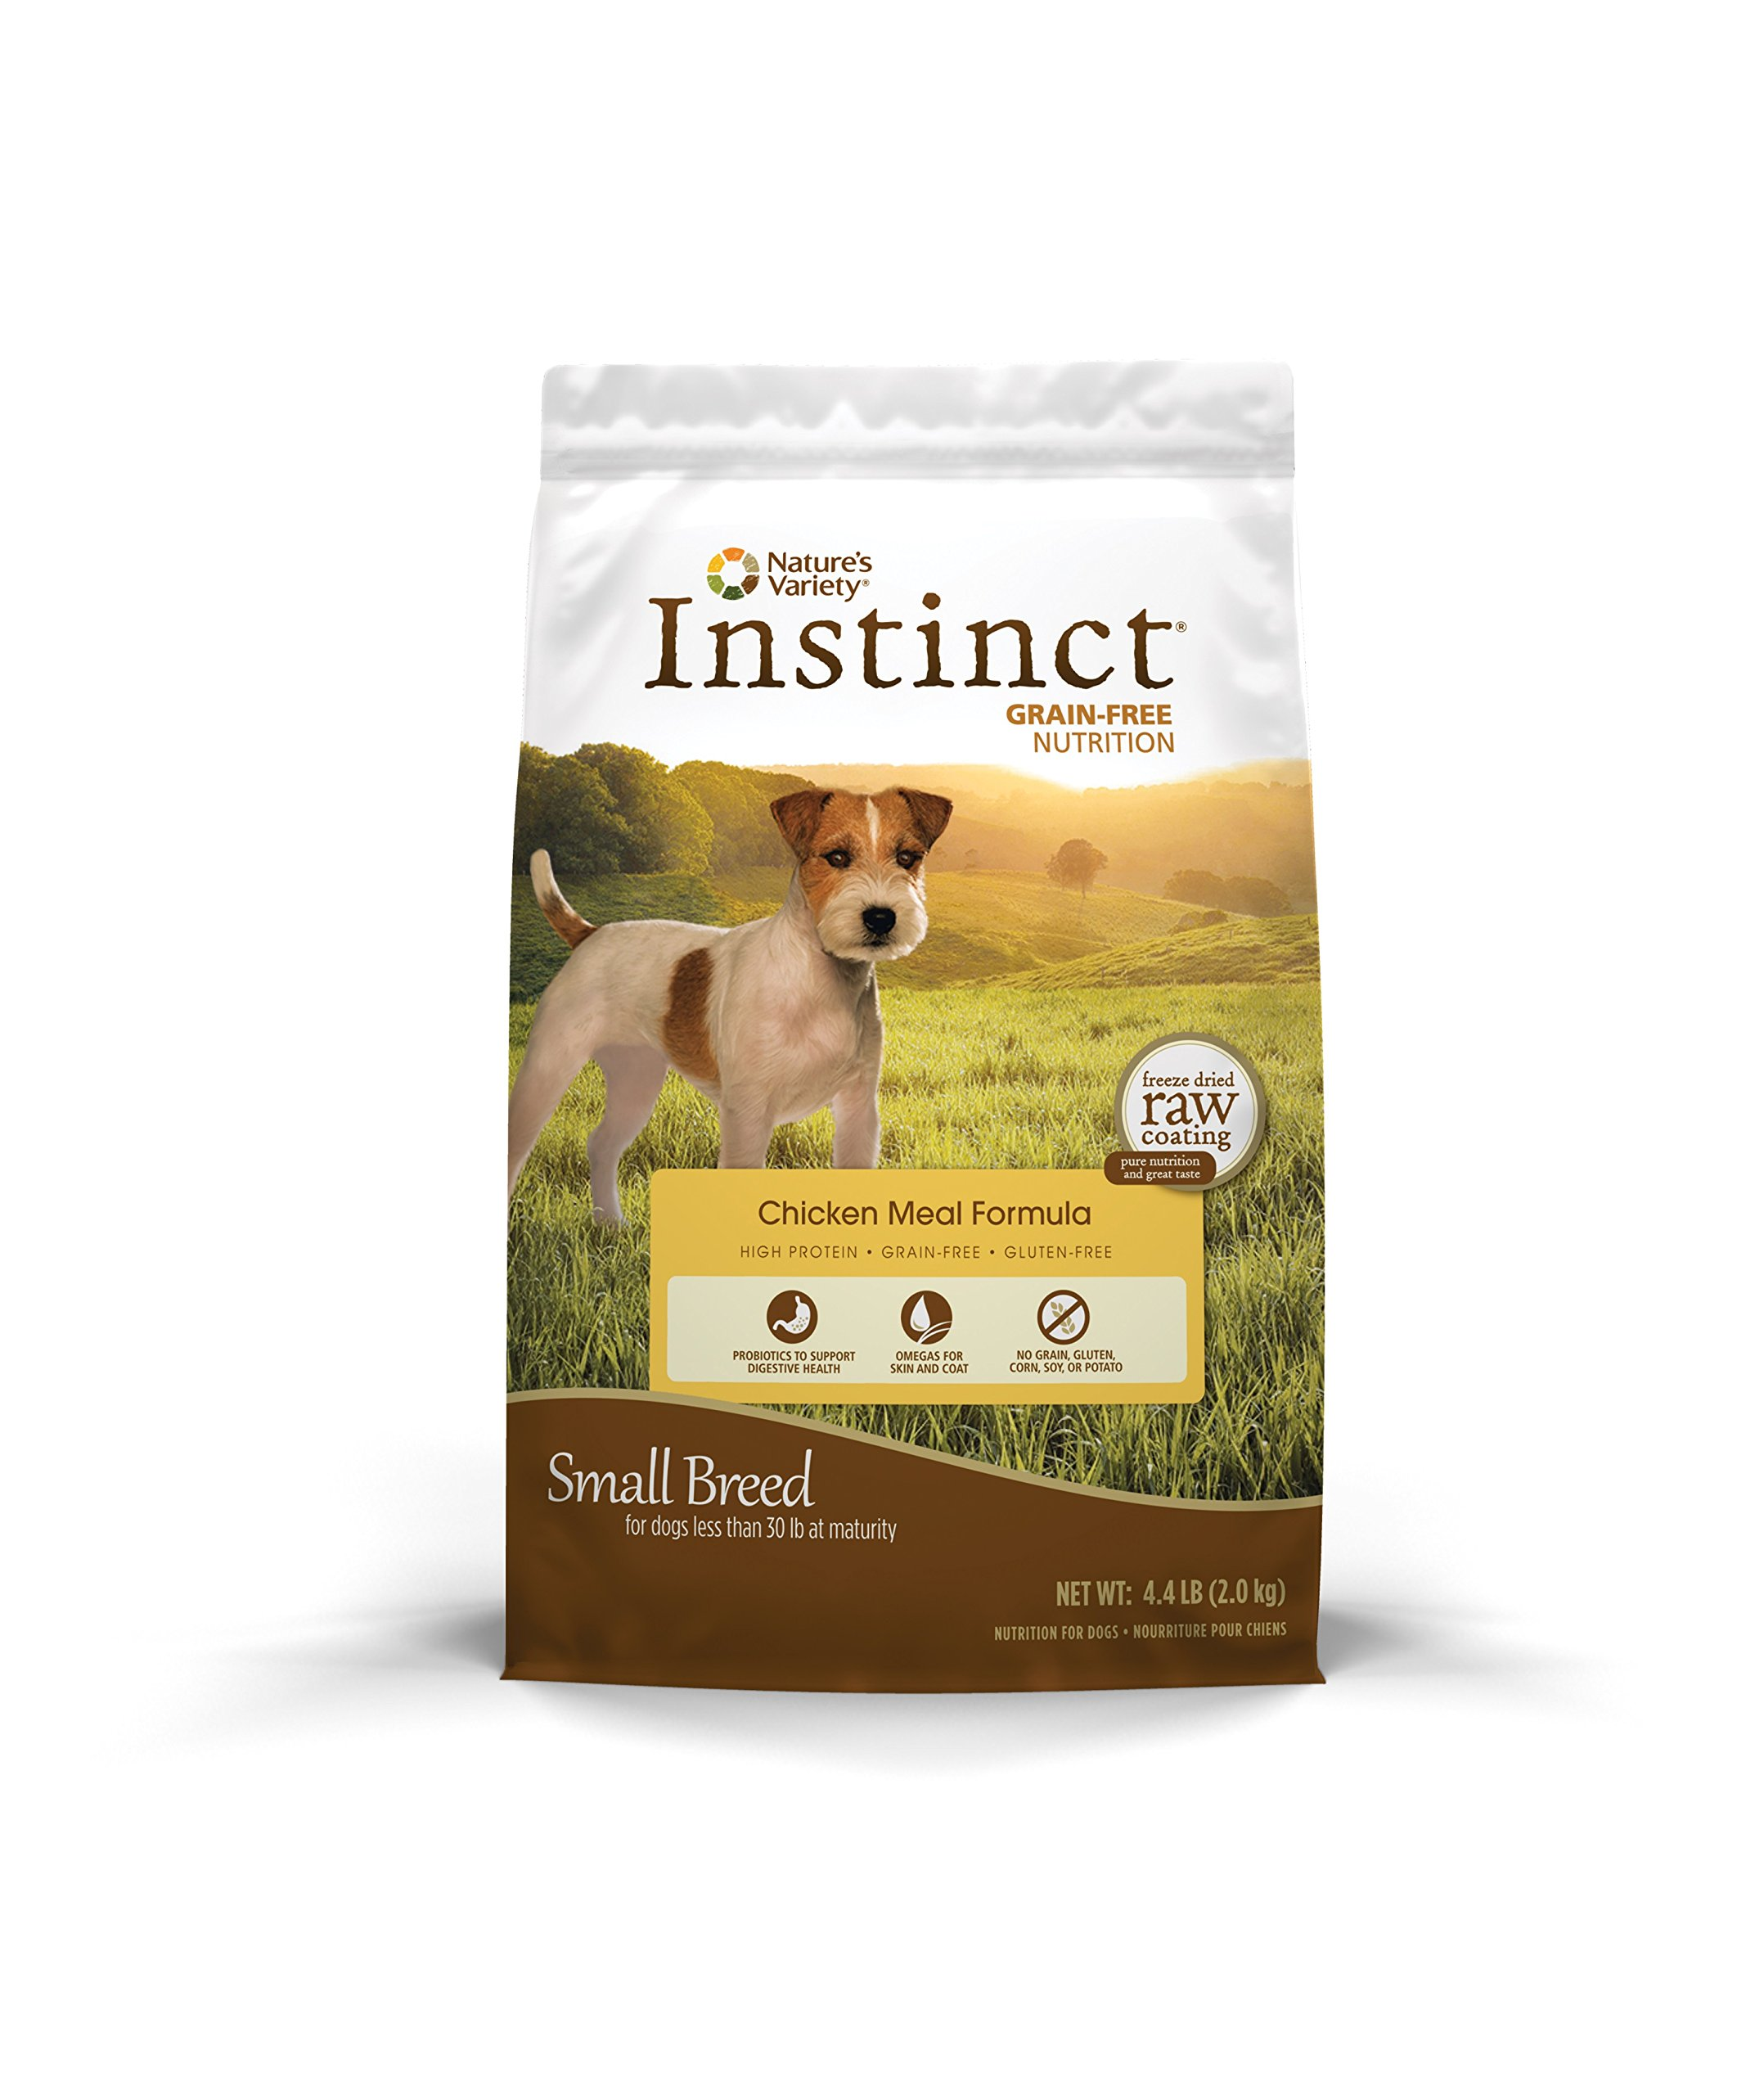 Instinct Original Small Breed Grain Free Chicken Meal Formula Natural Dry Dog Food by Nature's Variety, 4.4 lb. Bag by Nature's Variety (Image #1)